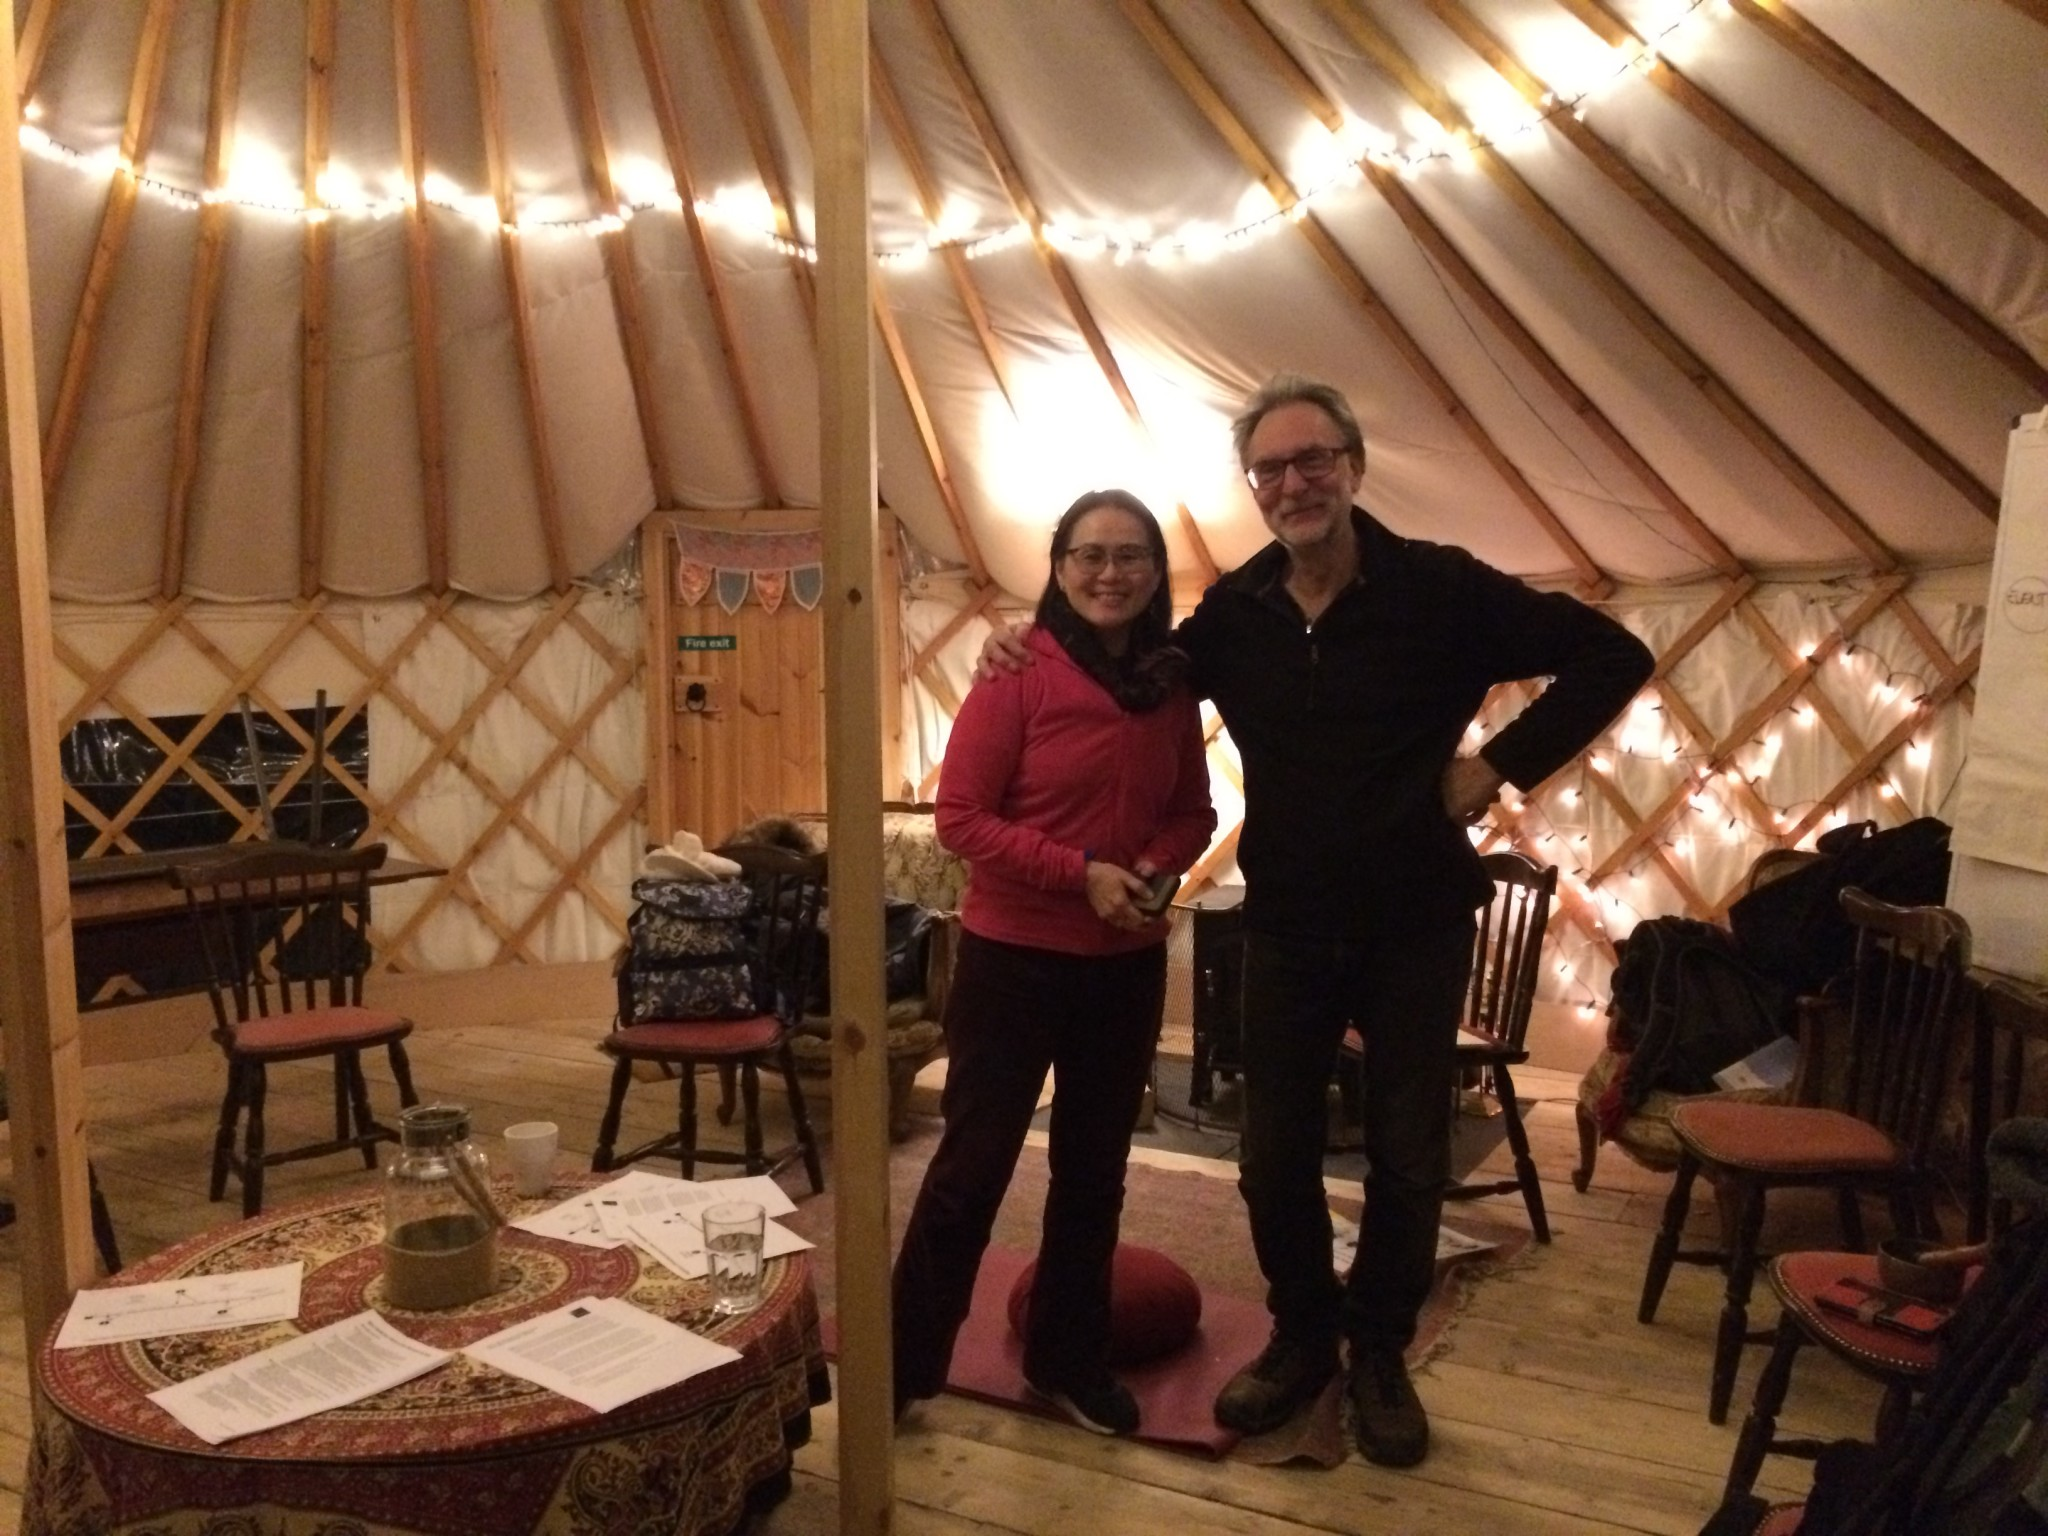 Queen Mary University Yurt